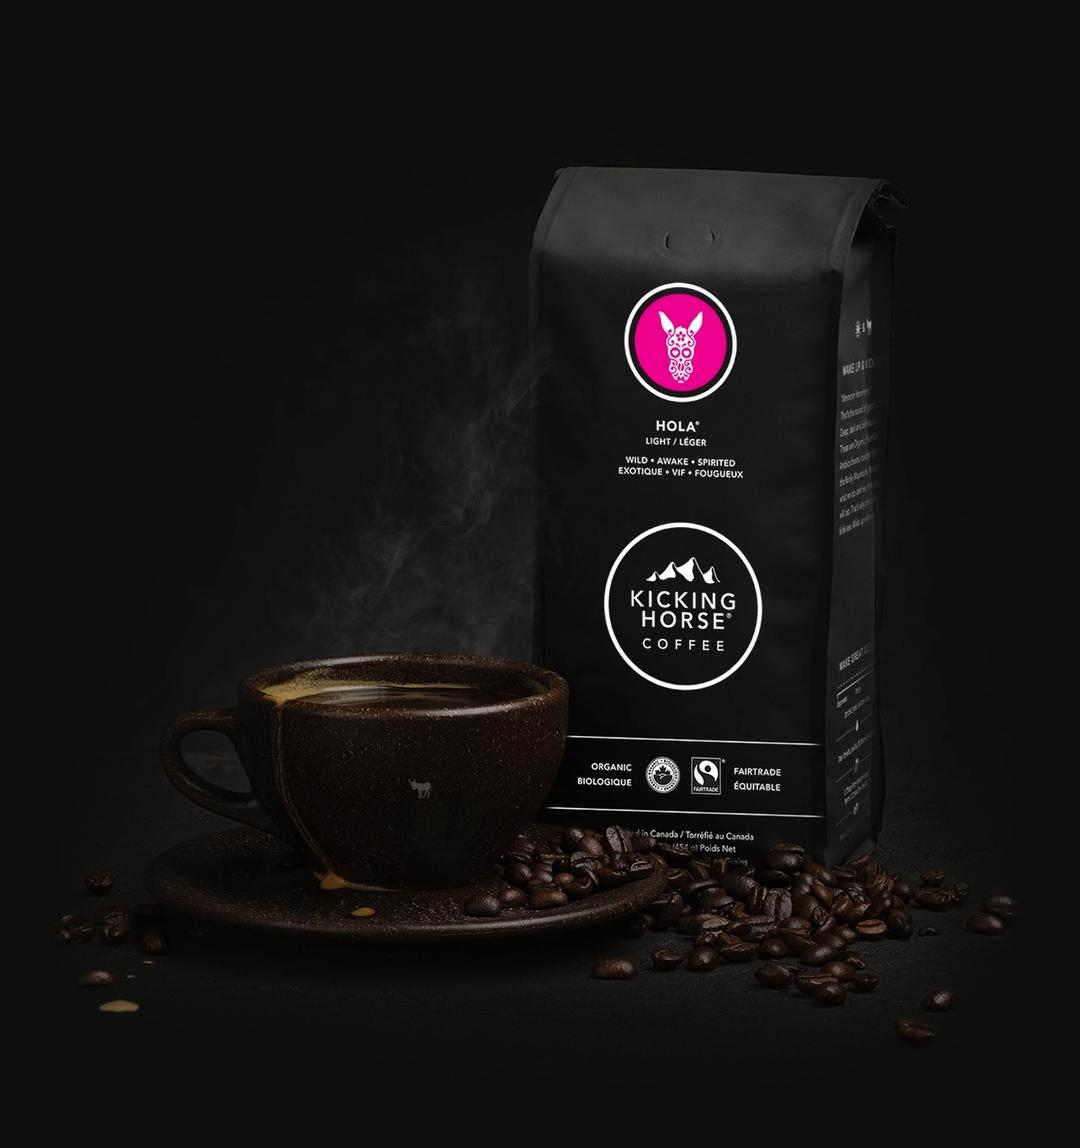 Hola Whole Bean Coffee bag with cup of coffee and coffee beans